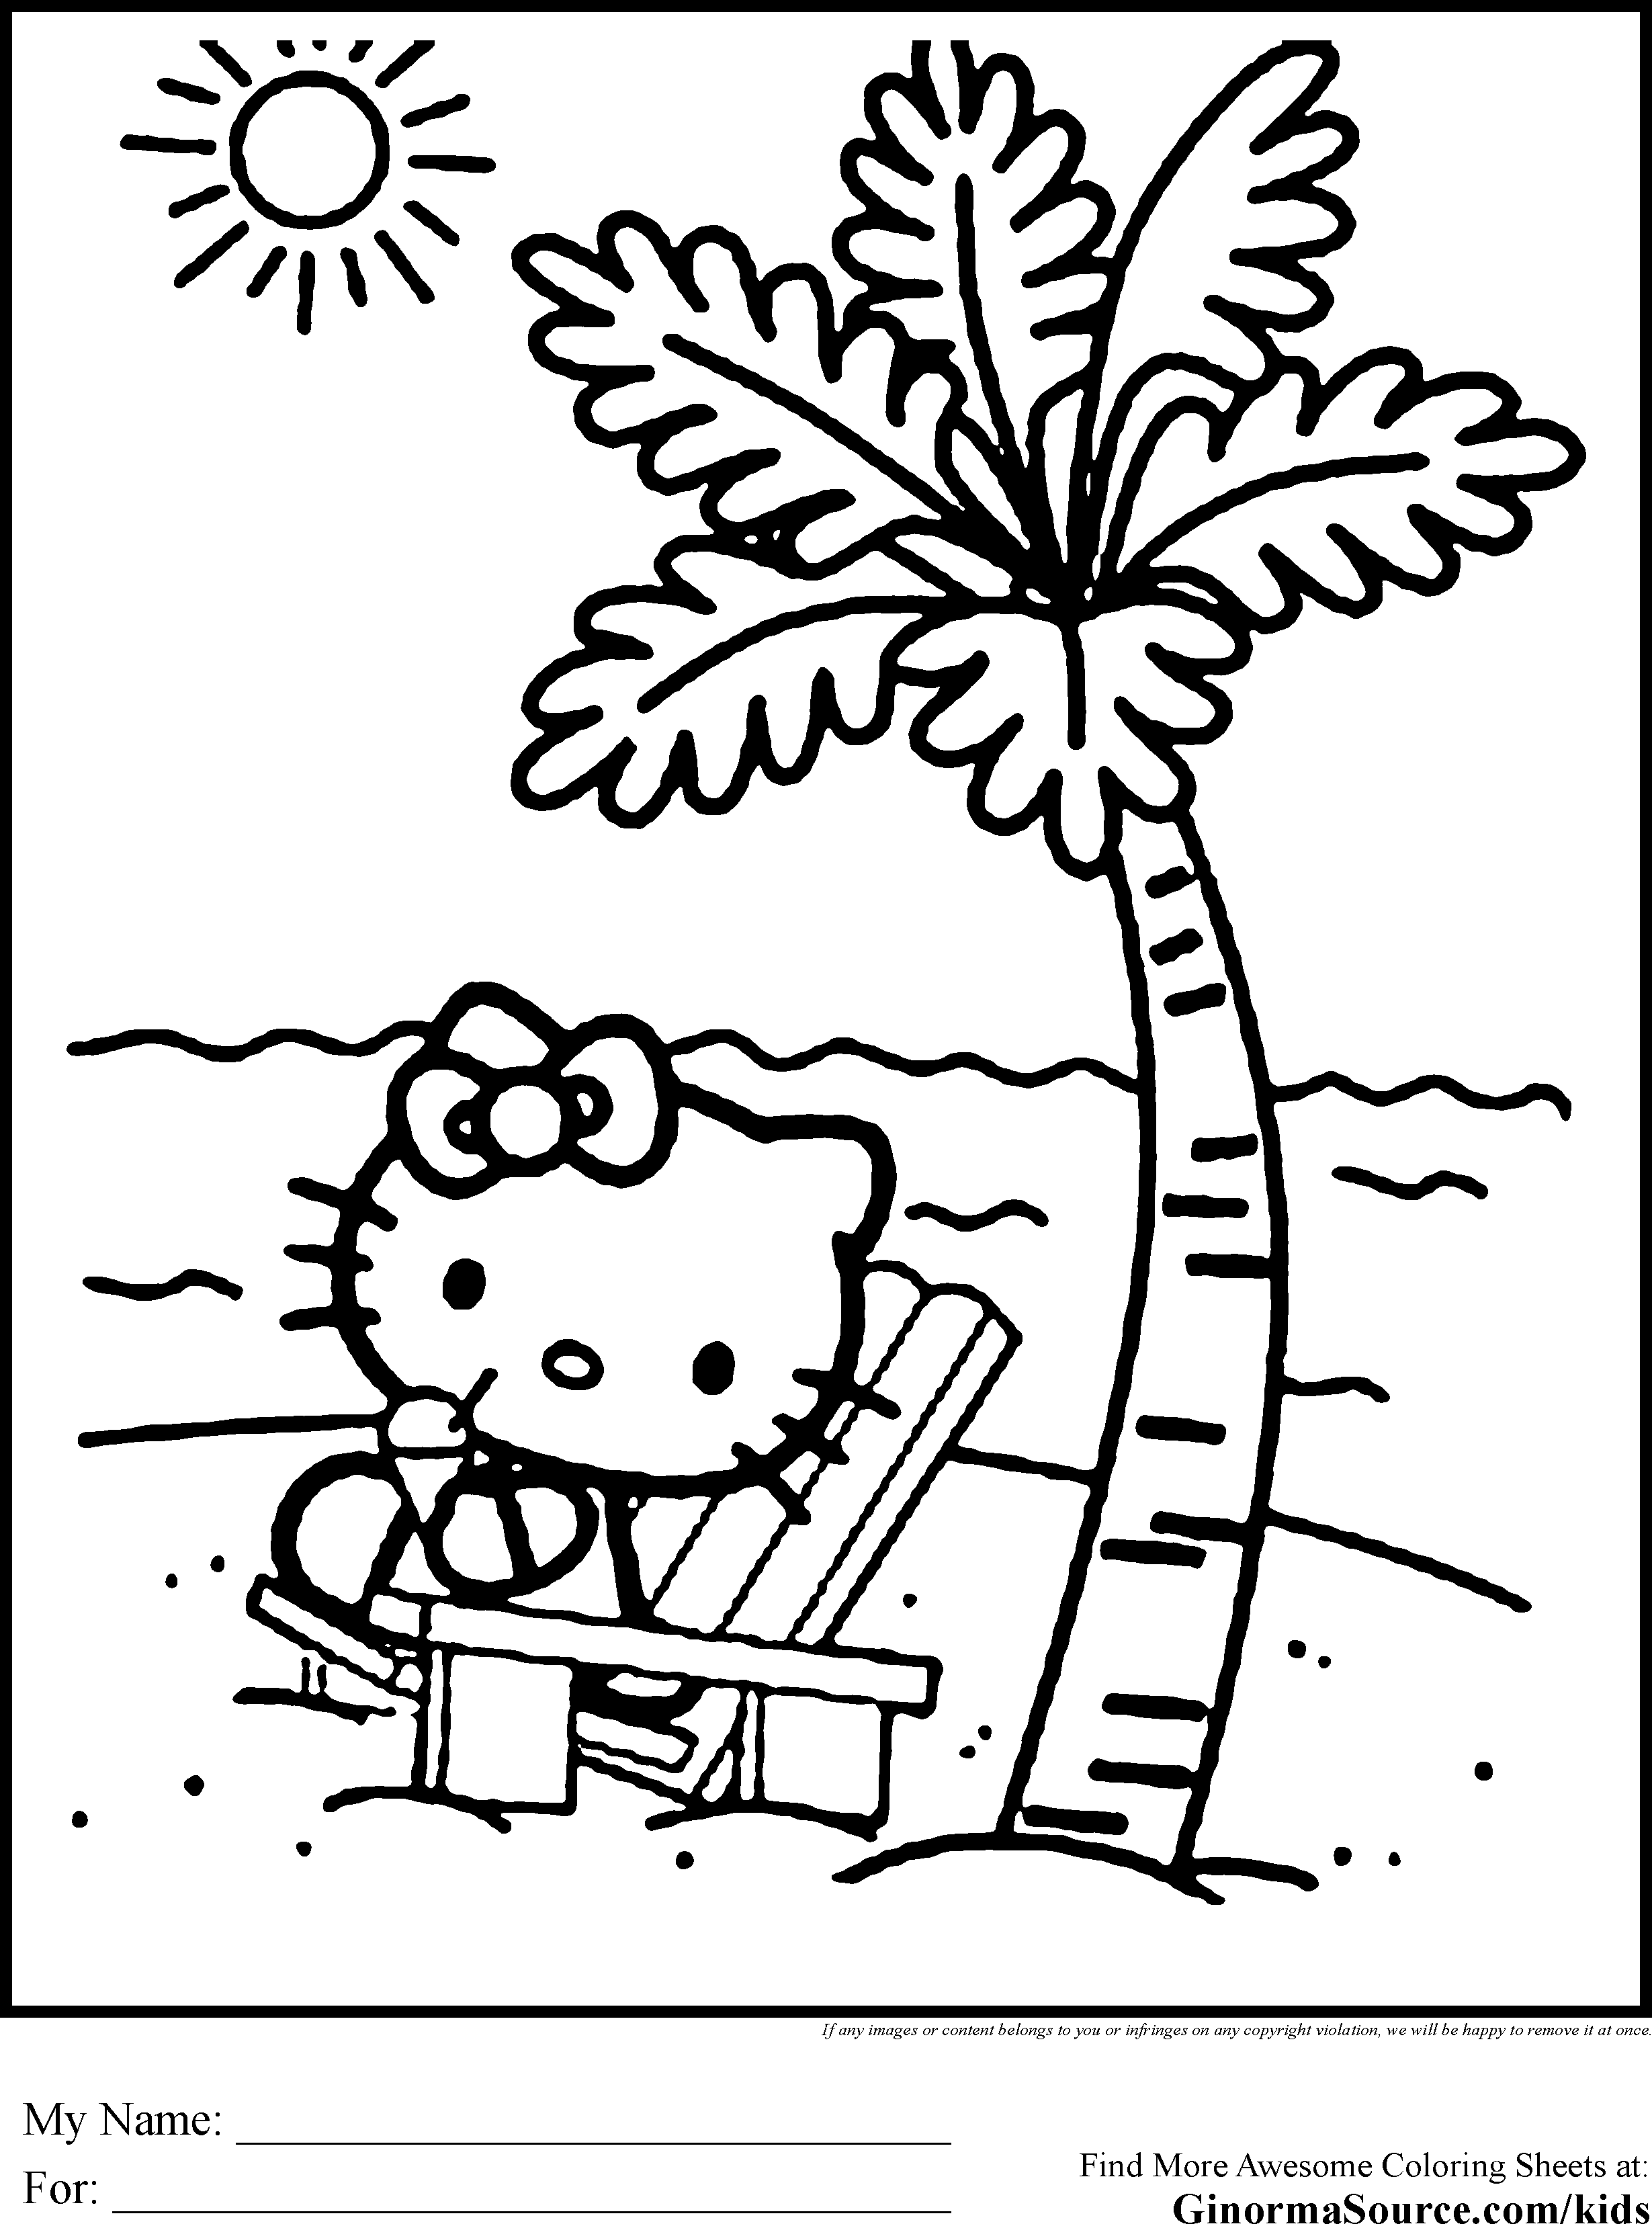 Coloring pages vacation - 1000 Images About Hello Kitty Coloring Pages On Pinterest Cartoon Hello Kitty Games And Coloring Pages For Kids 31 Summer Vacation Coloring Pages